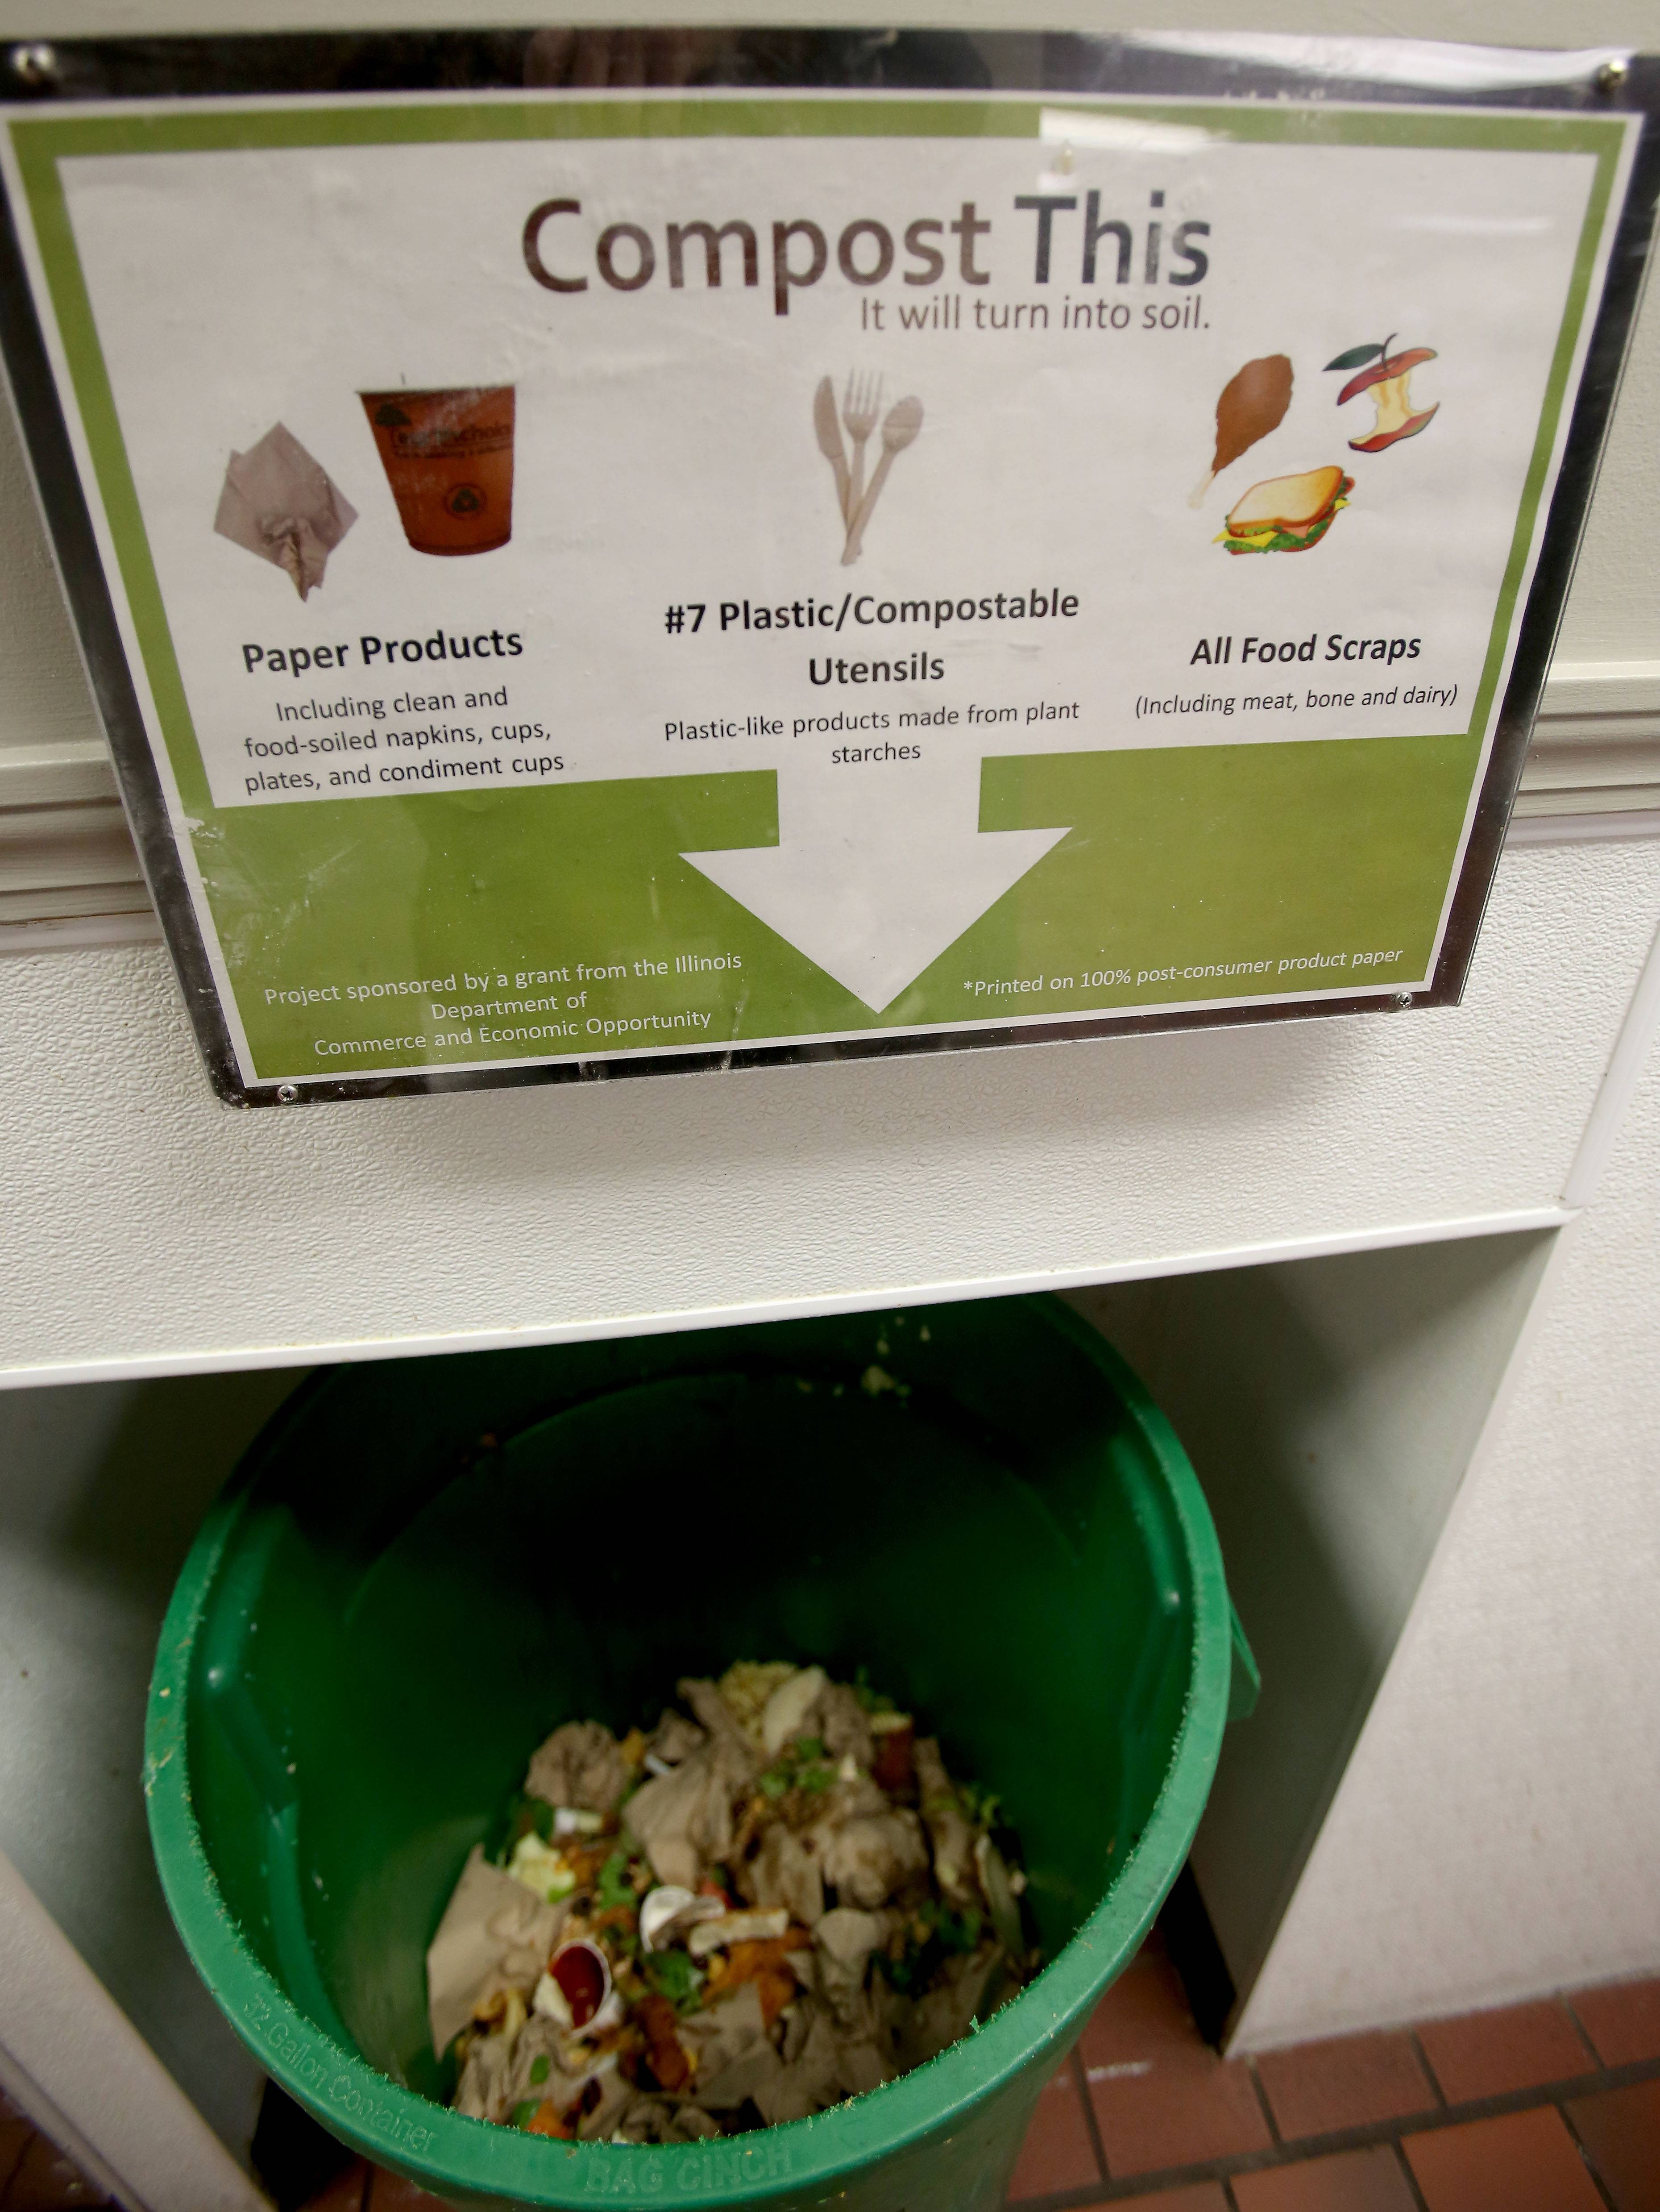 Students at North Central College in Naperville have had composting in their cafeteria for three years.